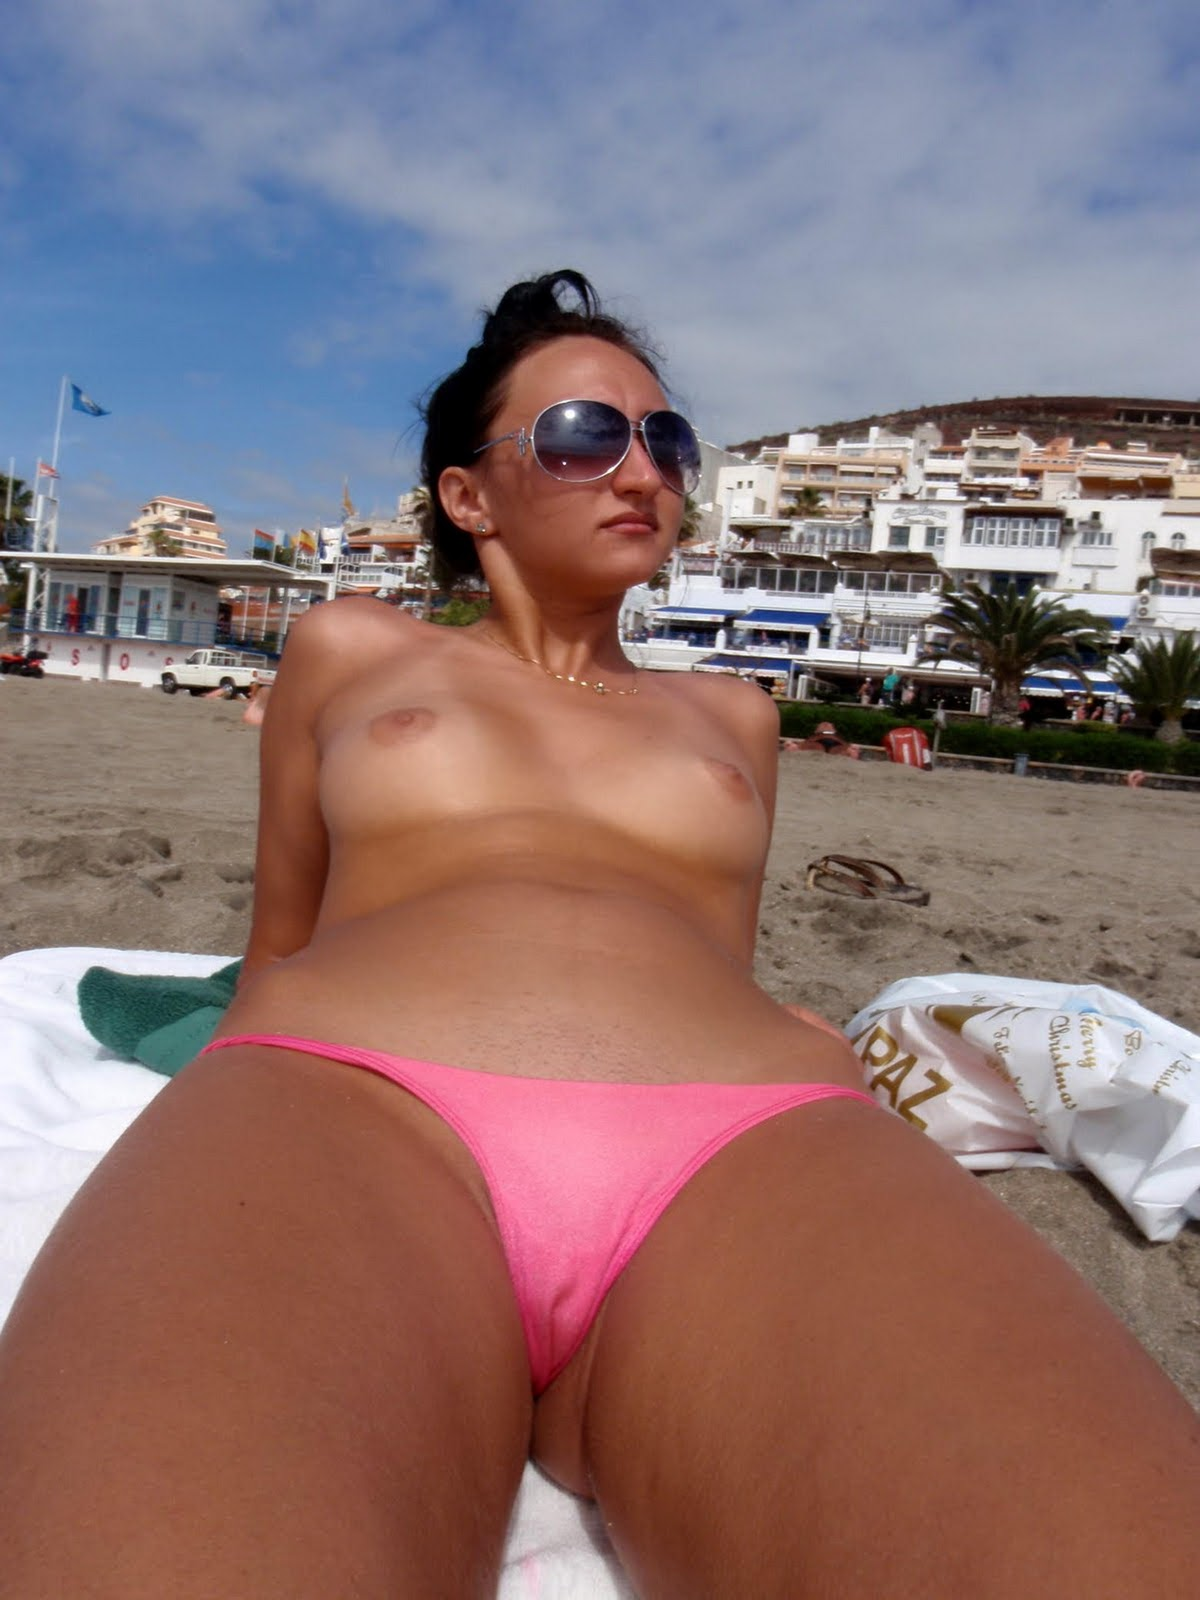 sexy european brunette topless on vacation at the beach